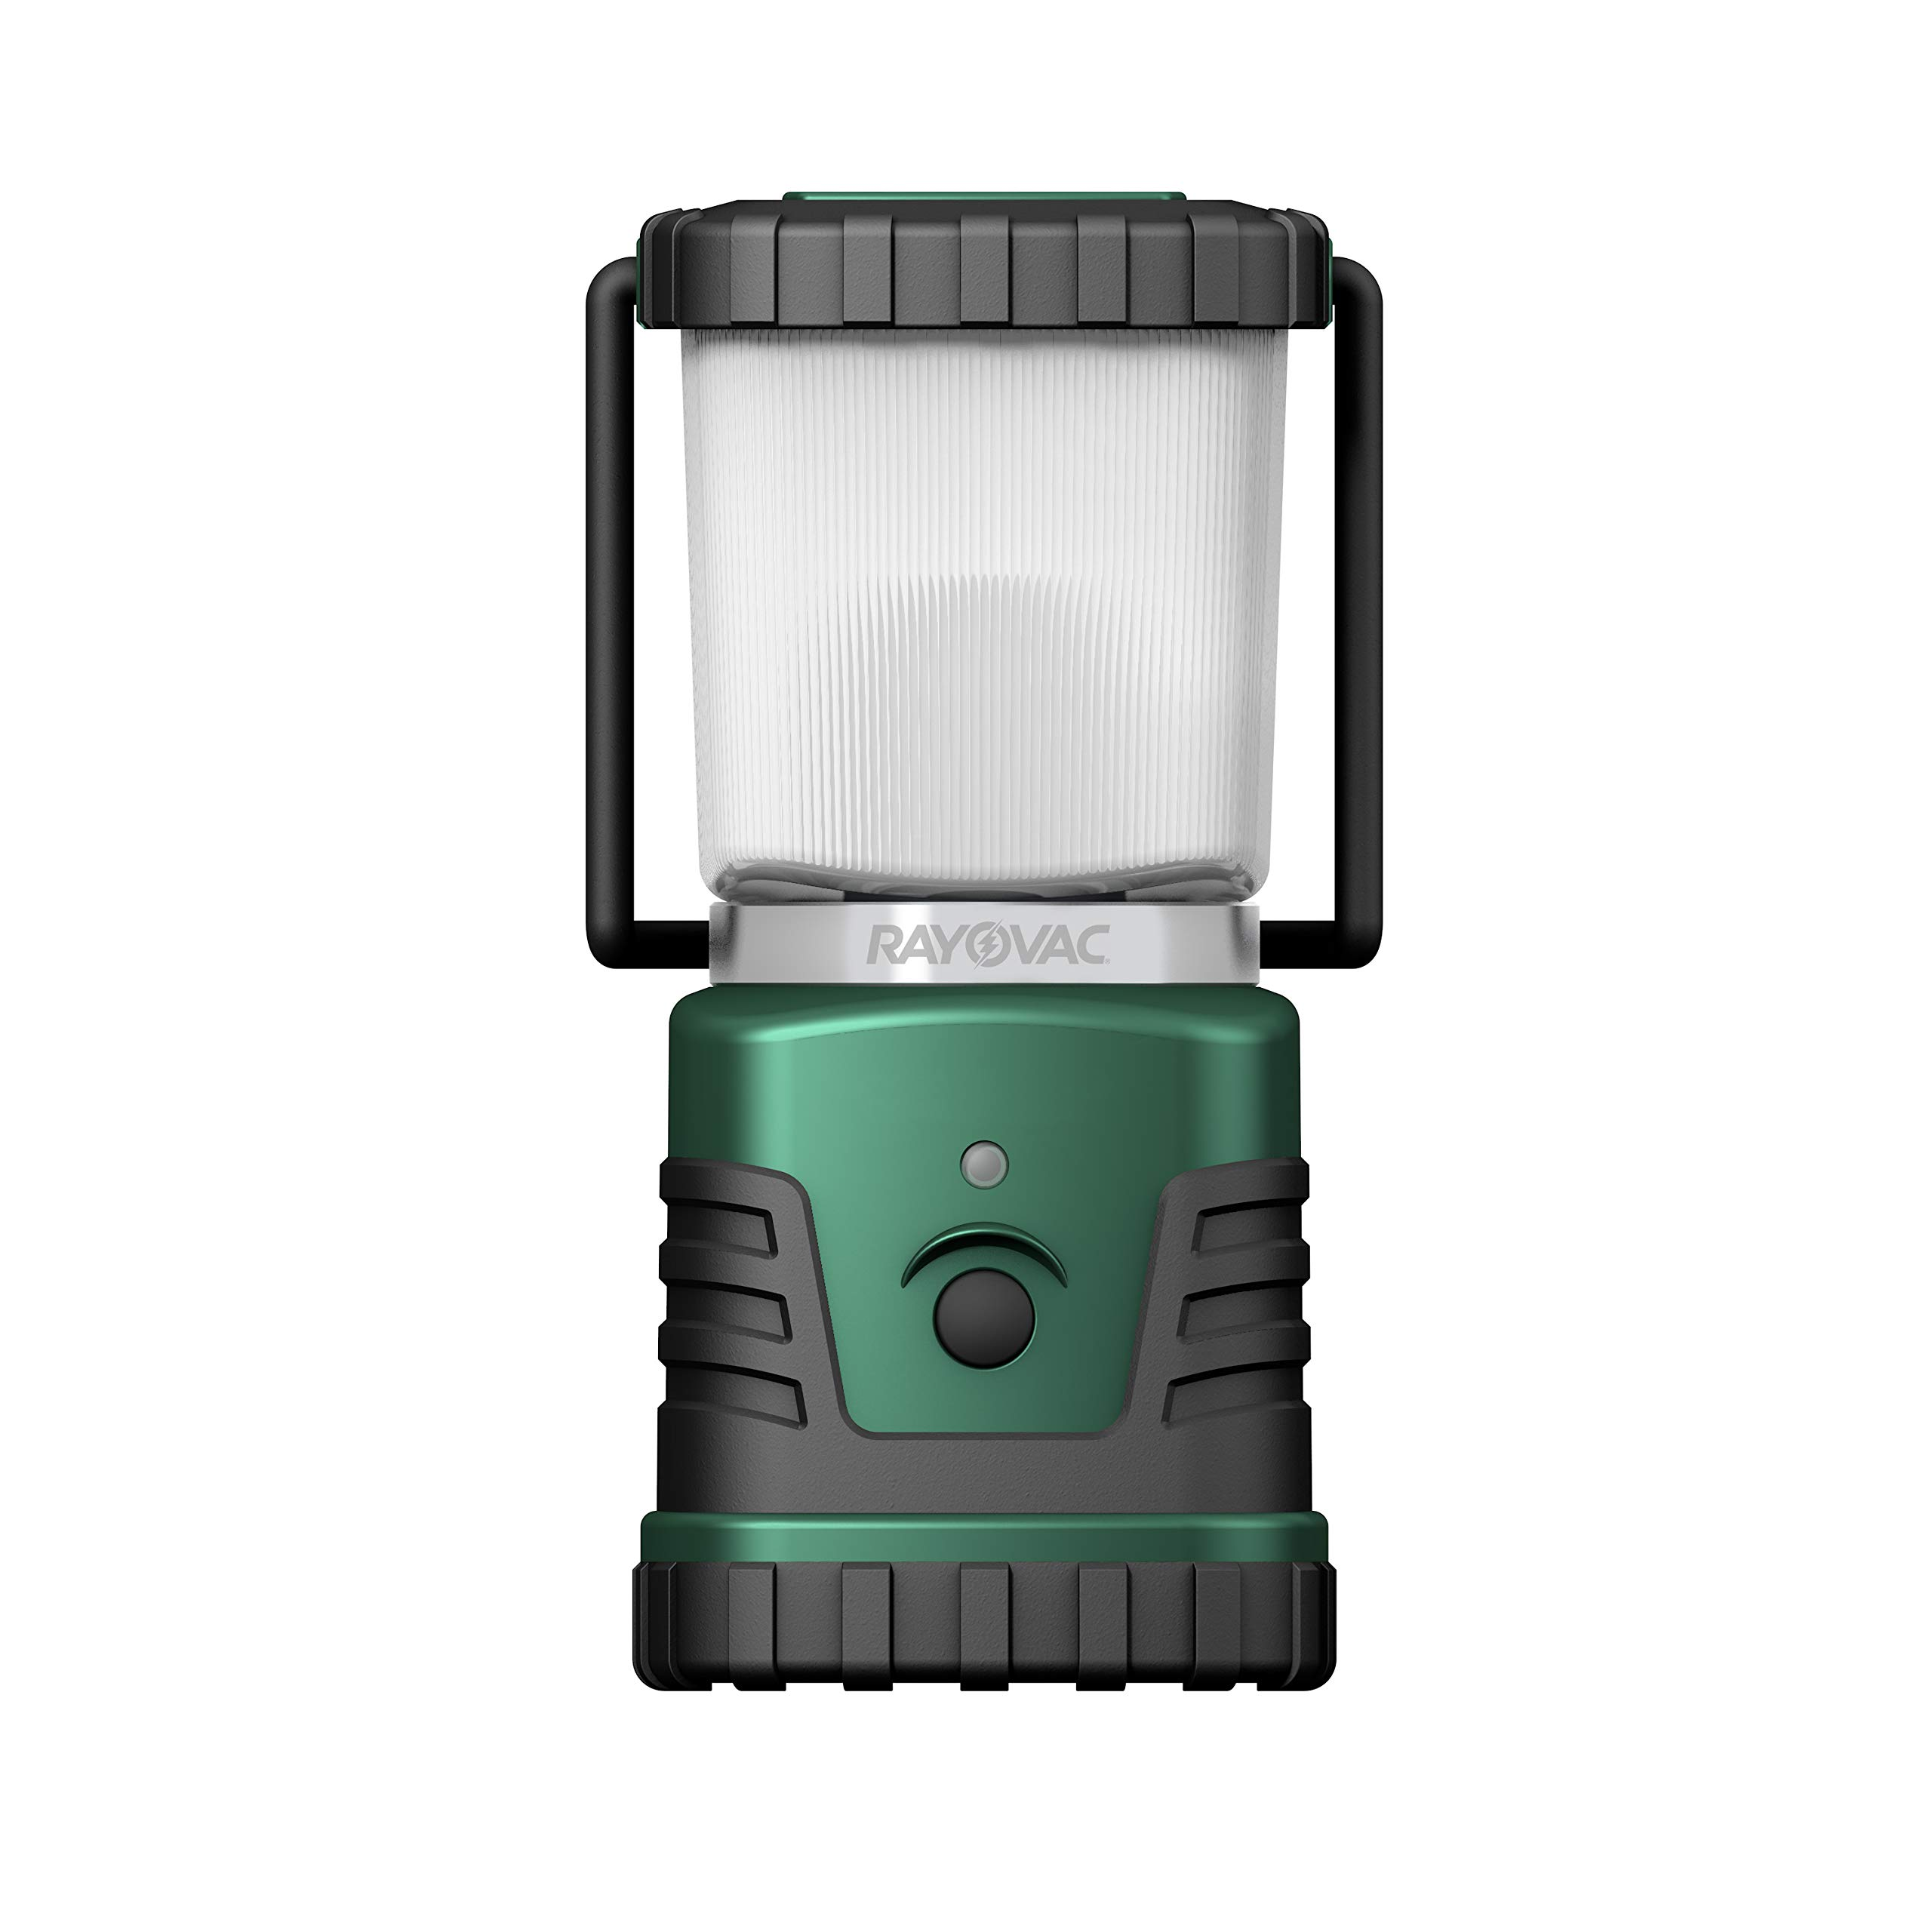 Rayovac Sportsman Camping Lantern, 305 Lumen Water Resistant LED Lantern & Flashlight - Perfect for Camping, Hiking, Dog Walking, Power Outages, Emergency Situations by Rayovac